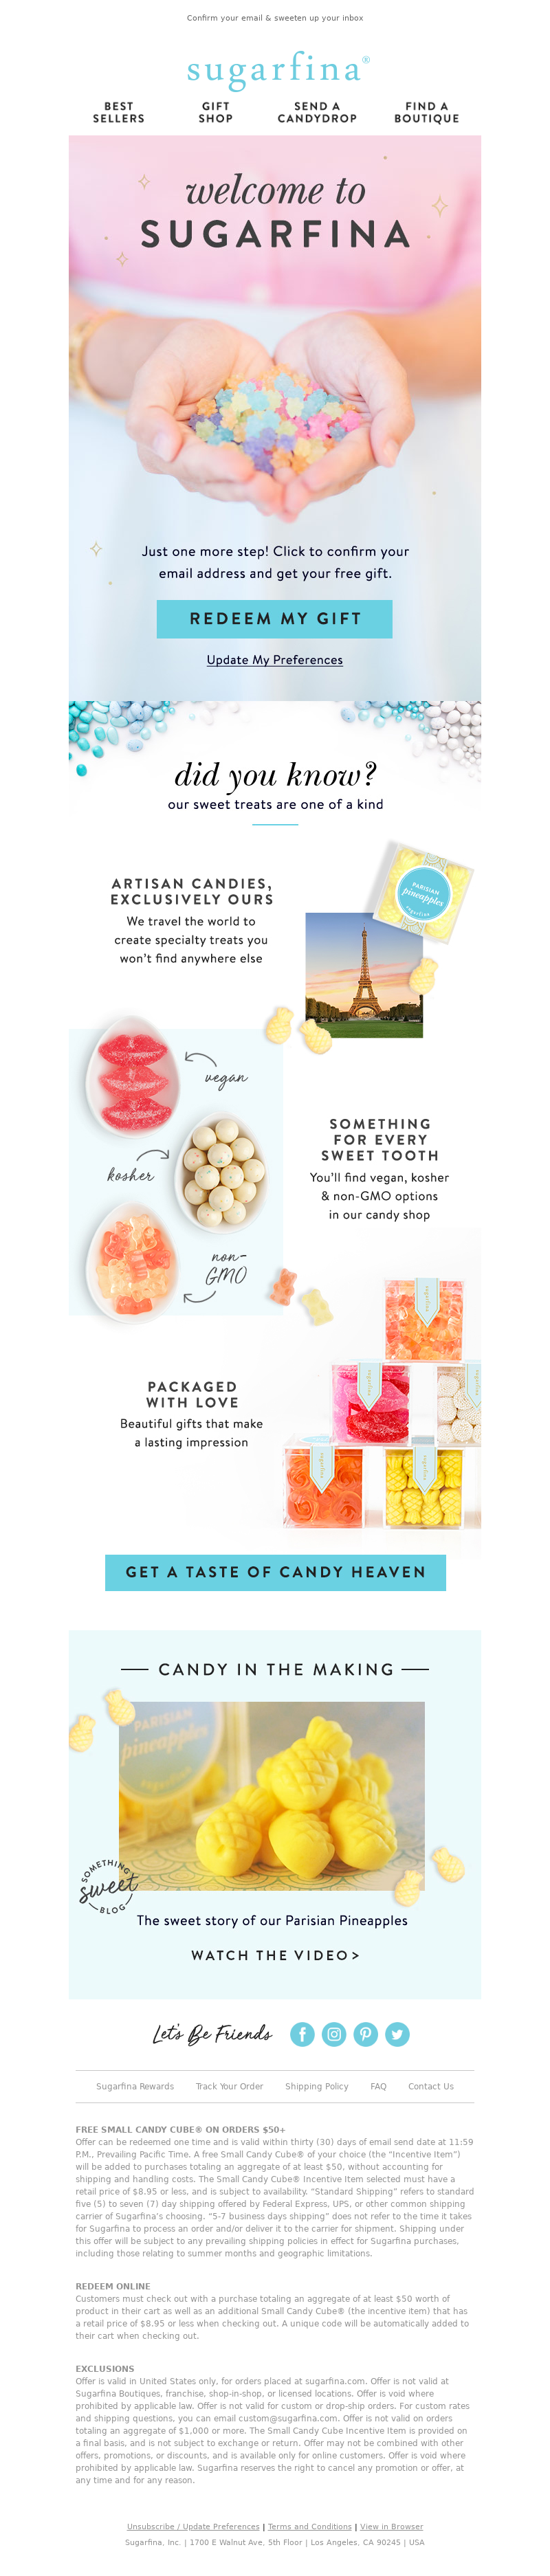 Confirm your email & sweeten up your inbox Sugarfina Best Sellers Gift Shop